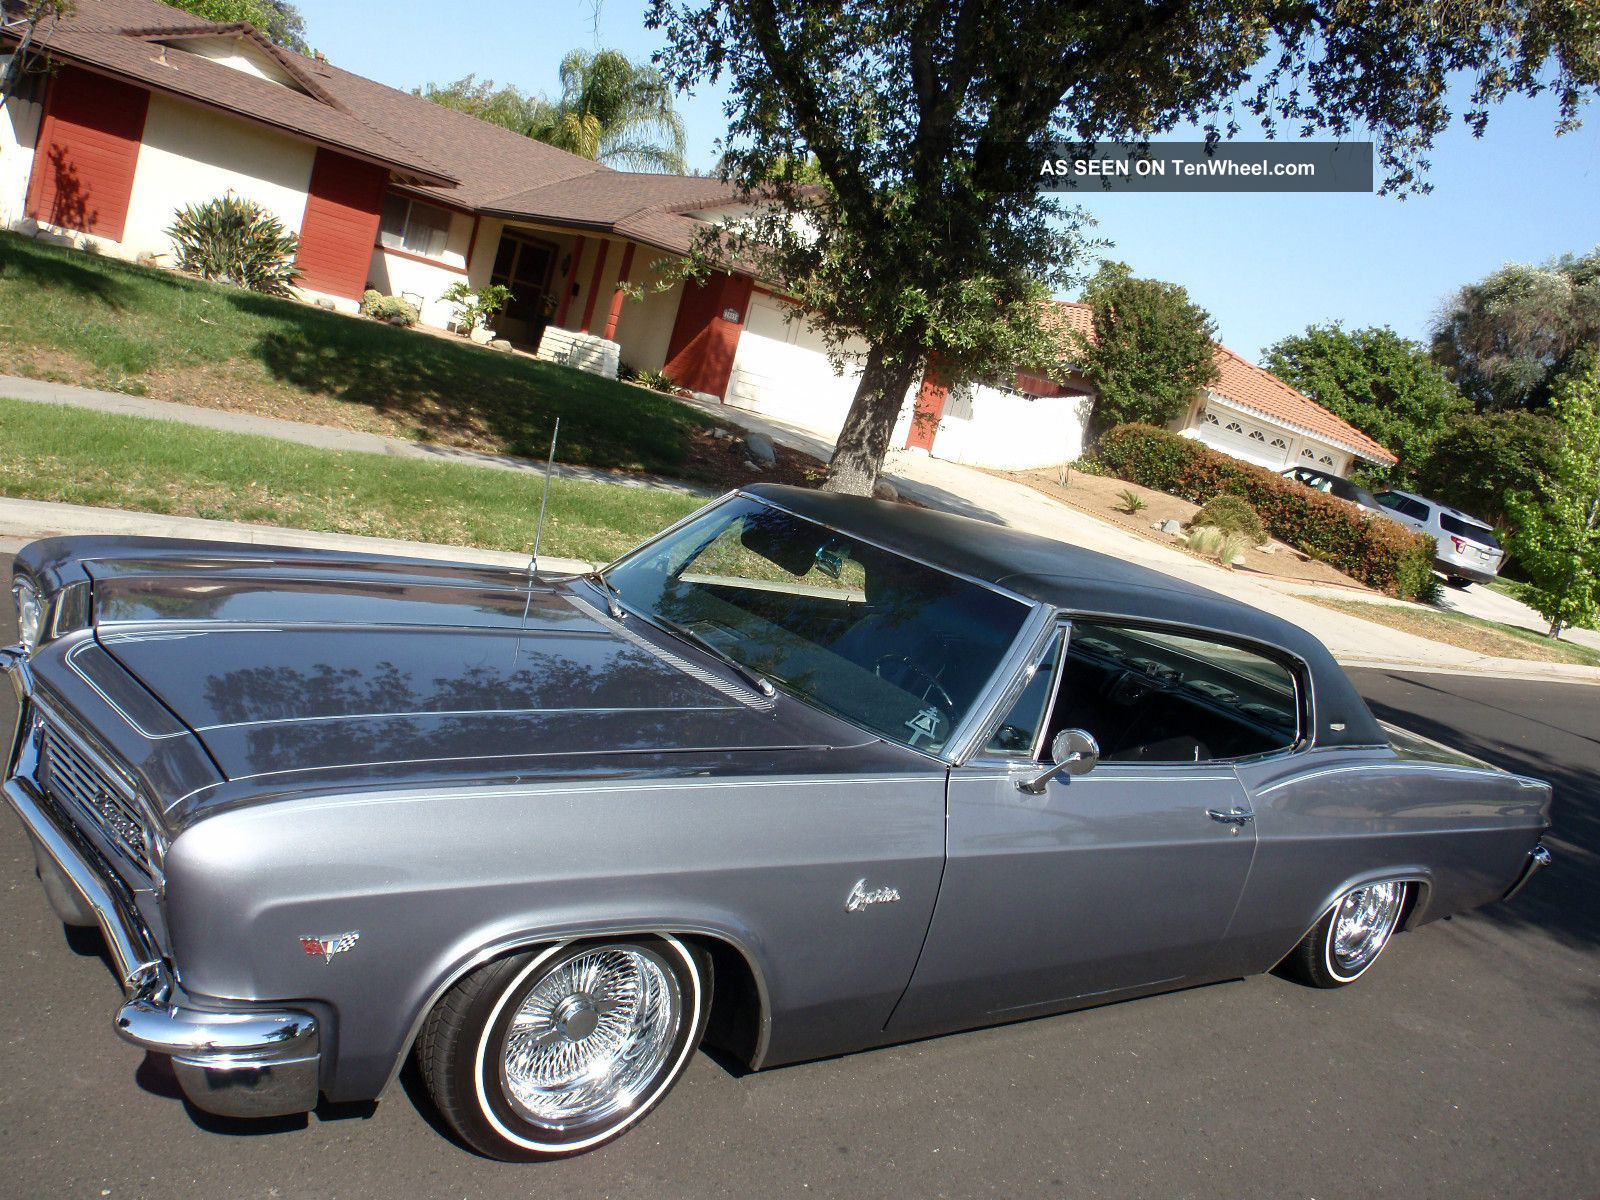 1966 Chevy Impala Caprice Bel Air West Coast Lowrider For Sale